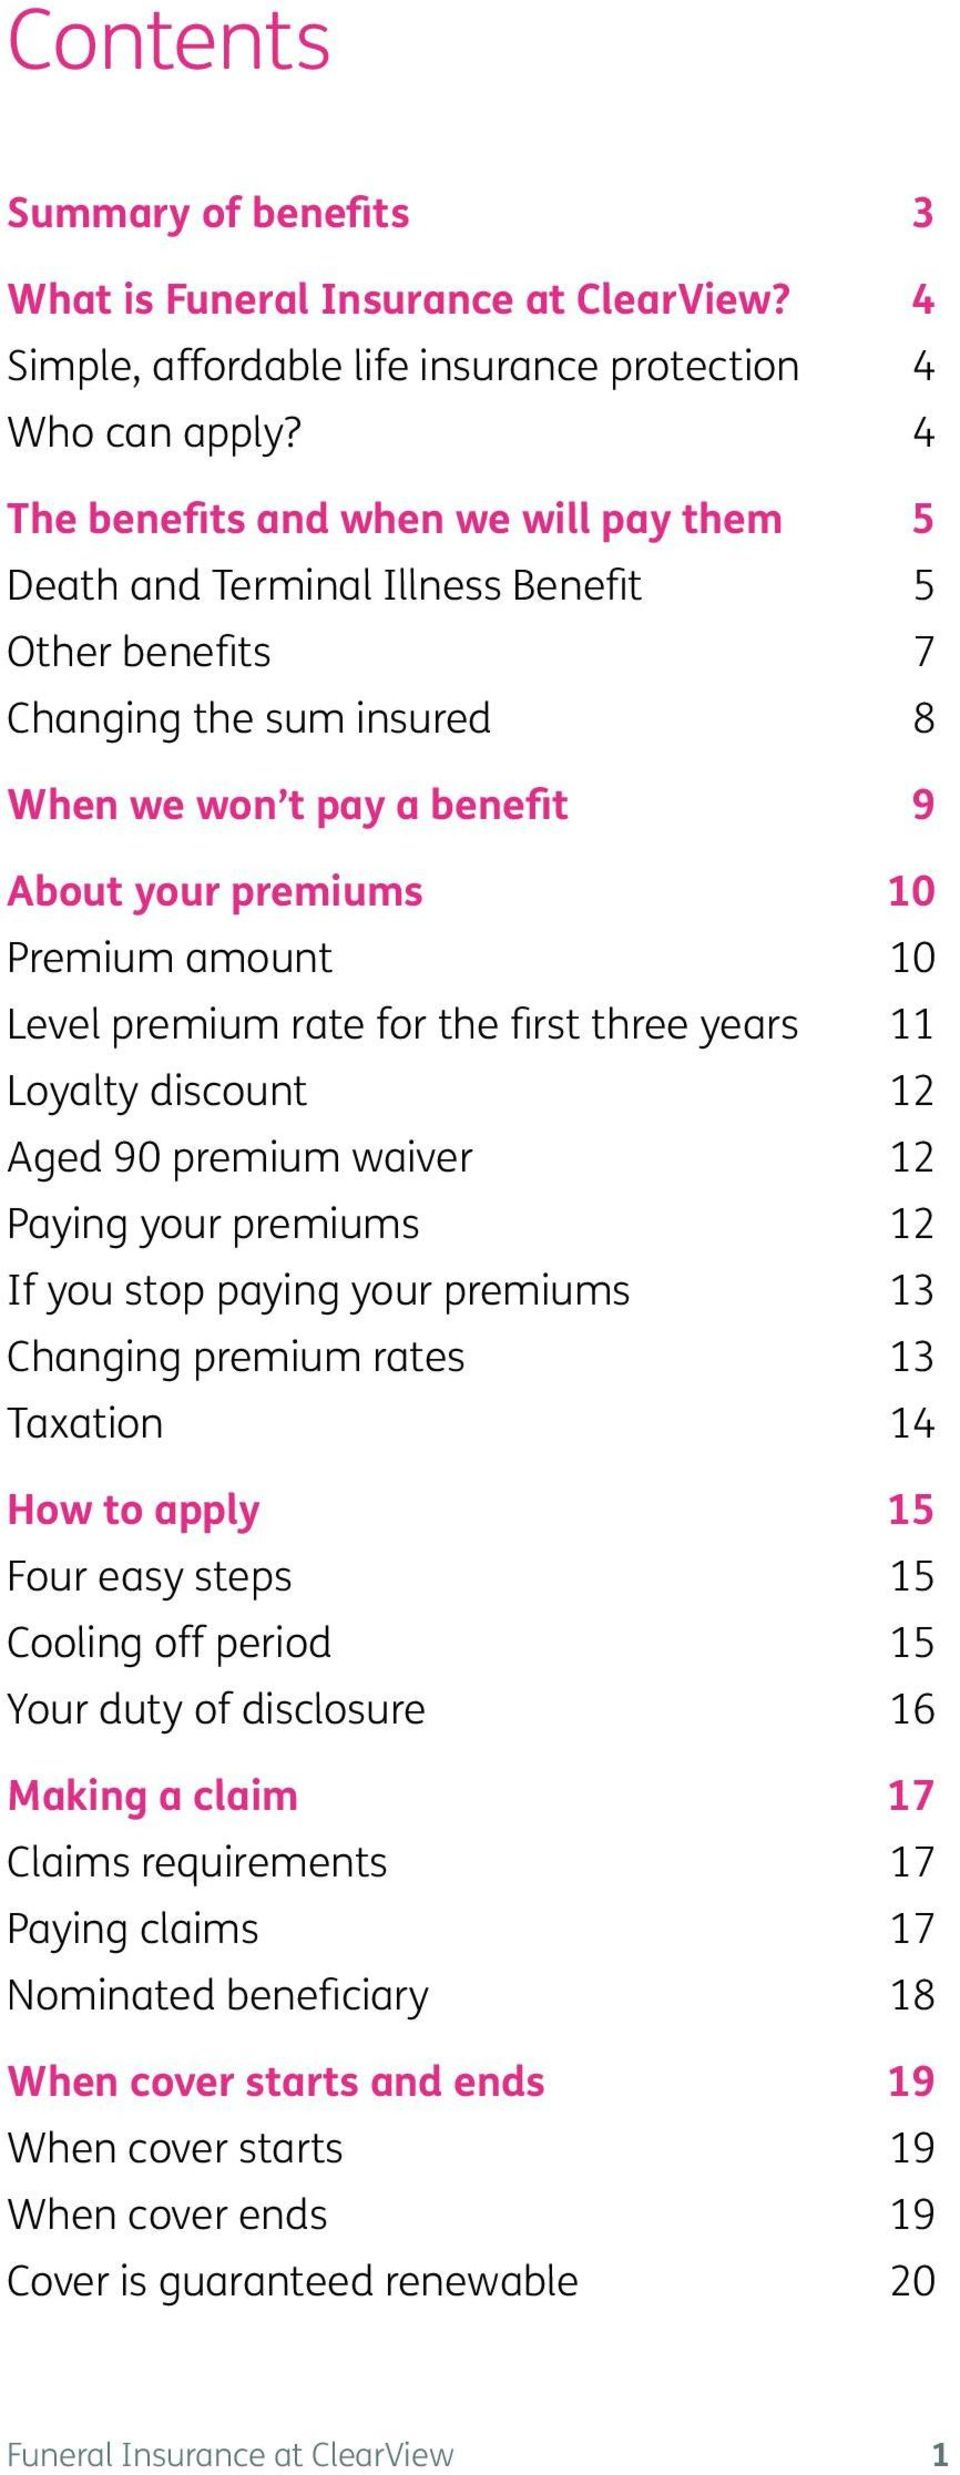 Level premium rate for the first three years 11 Loyalty discount 12 Aged 90 premium waiver 12 Paying your premiums 12 If you stop paying your premiums 13 Changing premium rates 13 Taxation 14 How to